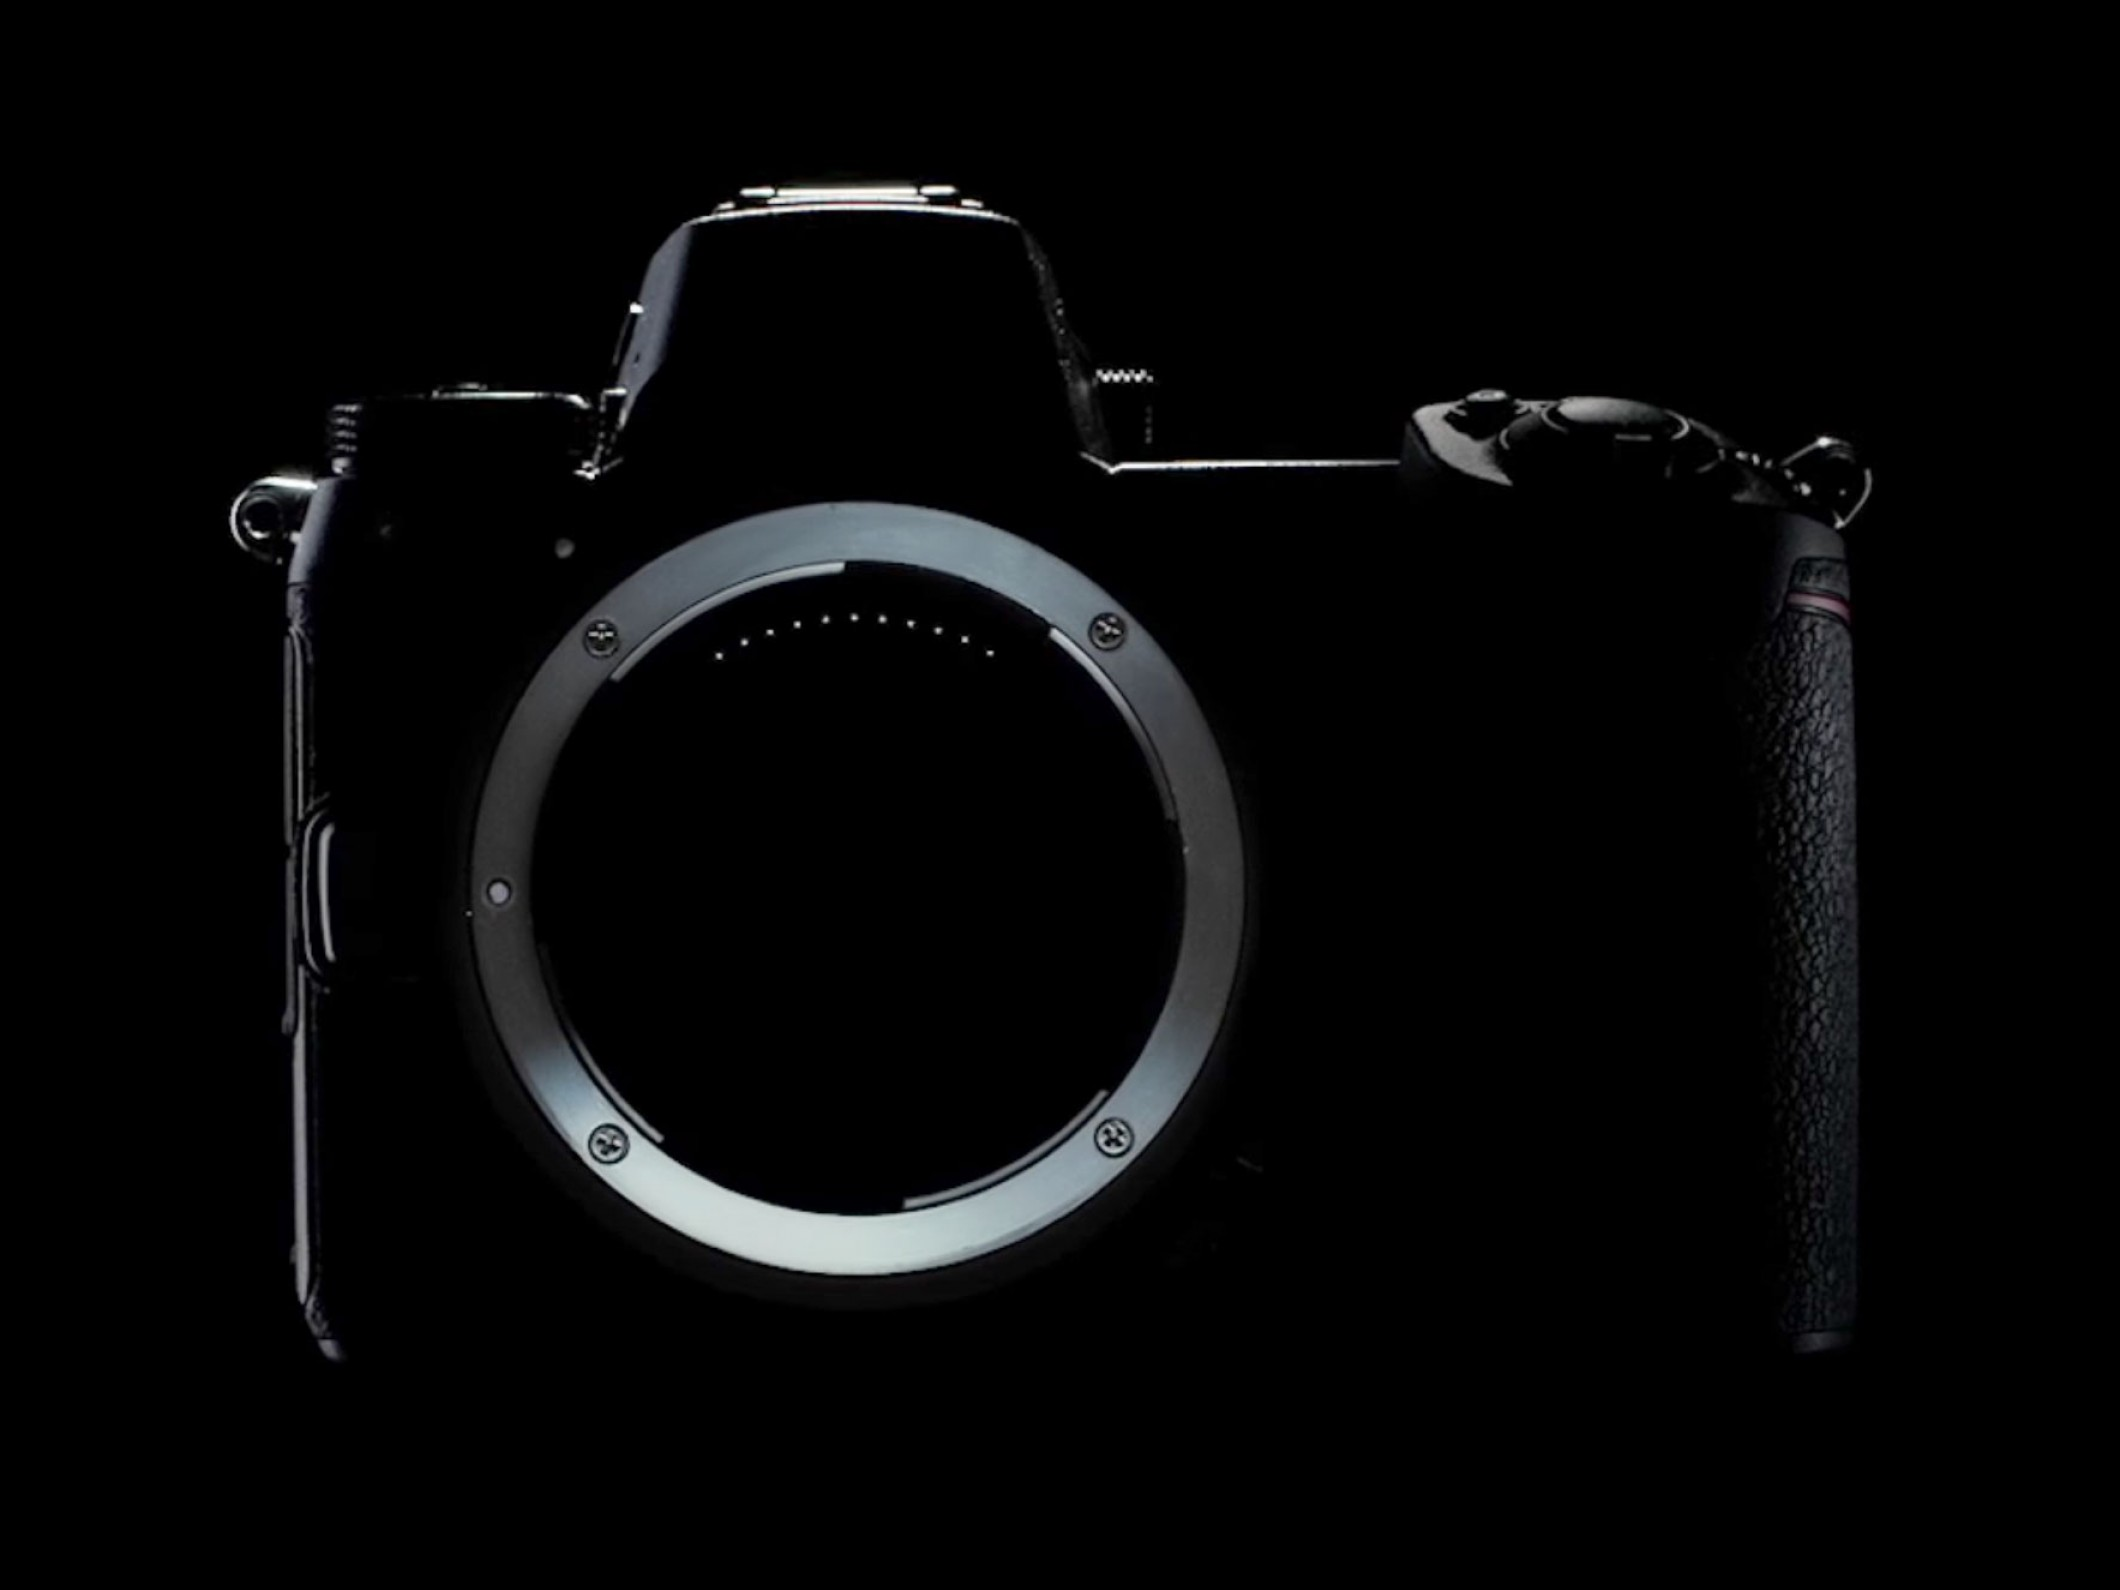 Hires Camera Lens Vector: Latest Nikon Mirrorless Teaser Gives A Closer Look At Body And Lens Mount